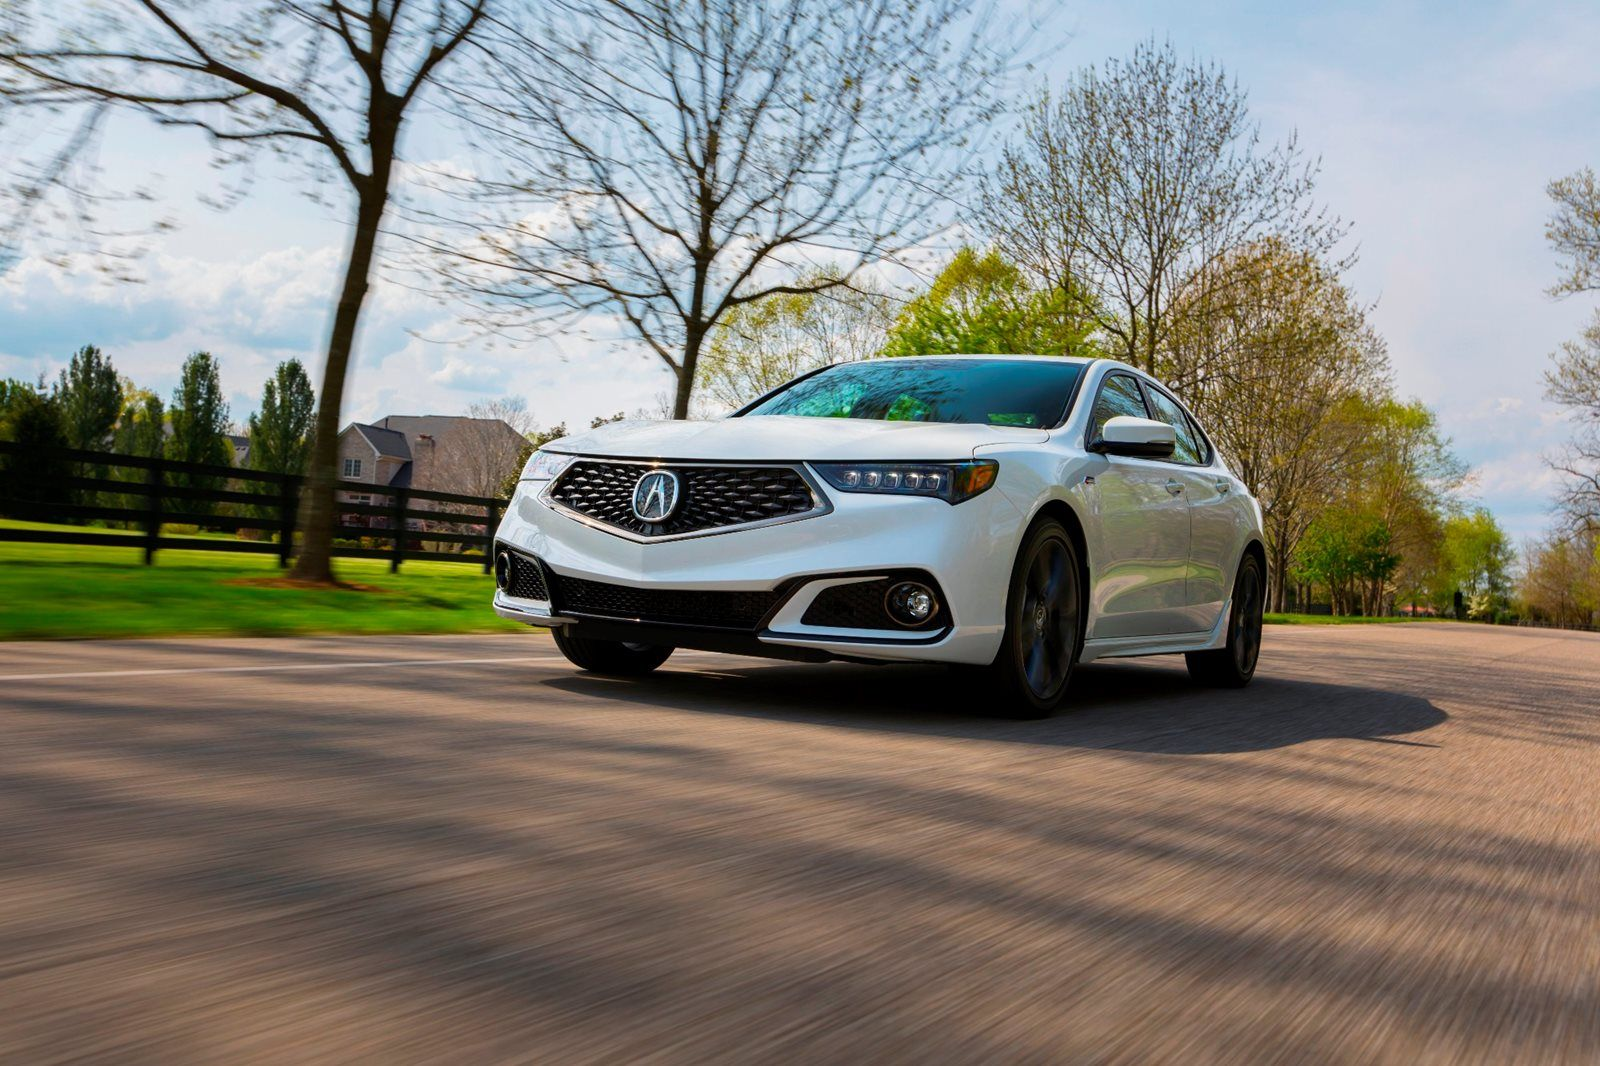 White Acura TLX in action